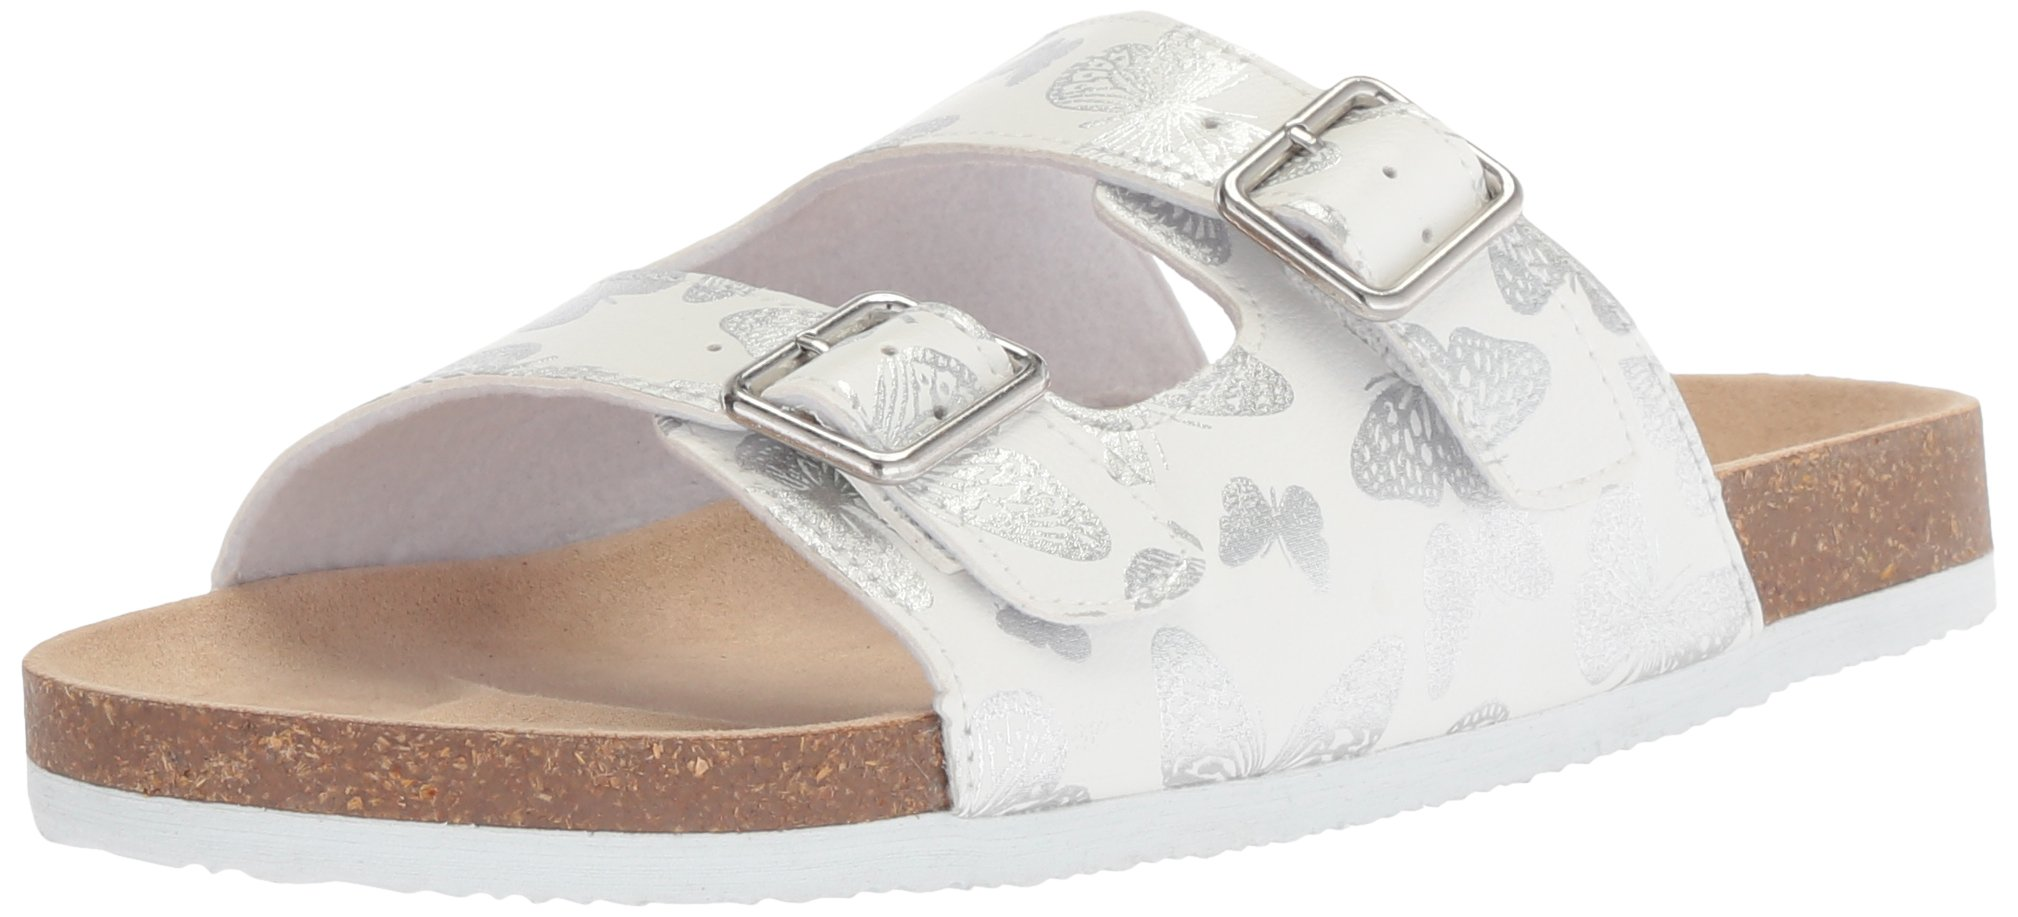 The Children's Place Girls' BG Butterfly LUN Flat Sandal, White, Youth 11 Medium US Big Kid